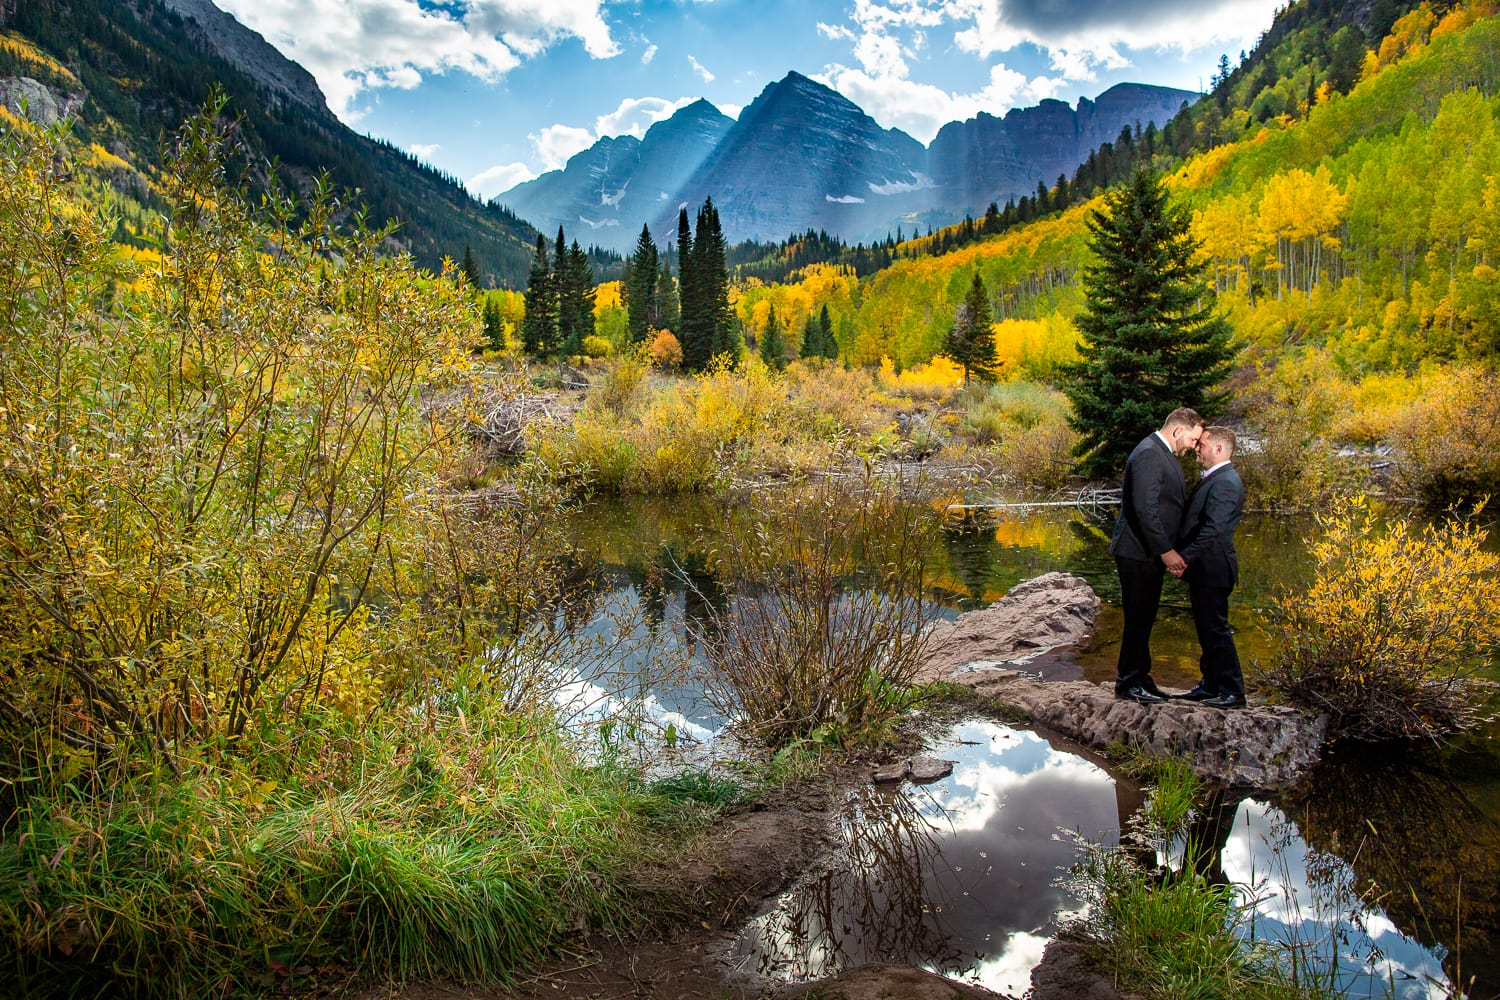 Two grooms share a romantic moment at the Maroon Bells in the fall.